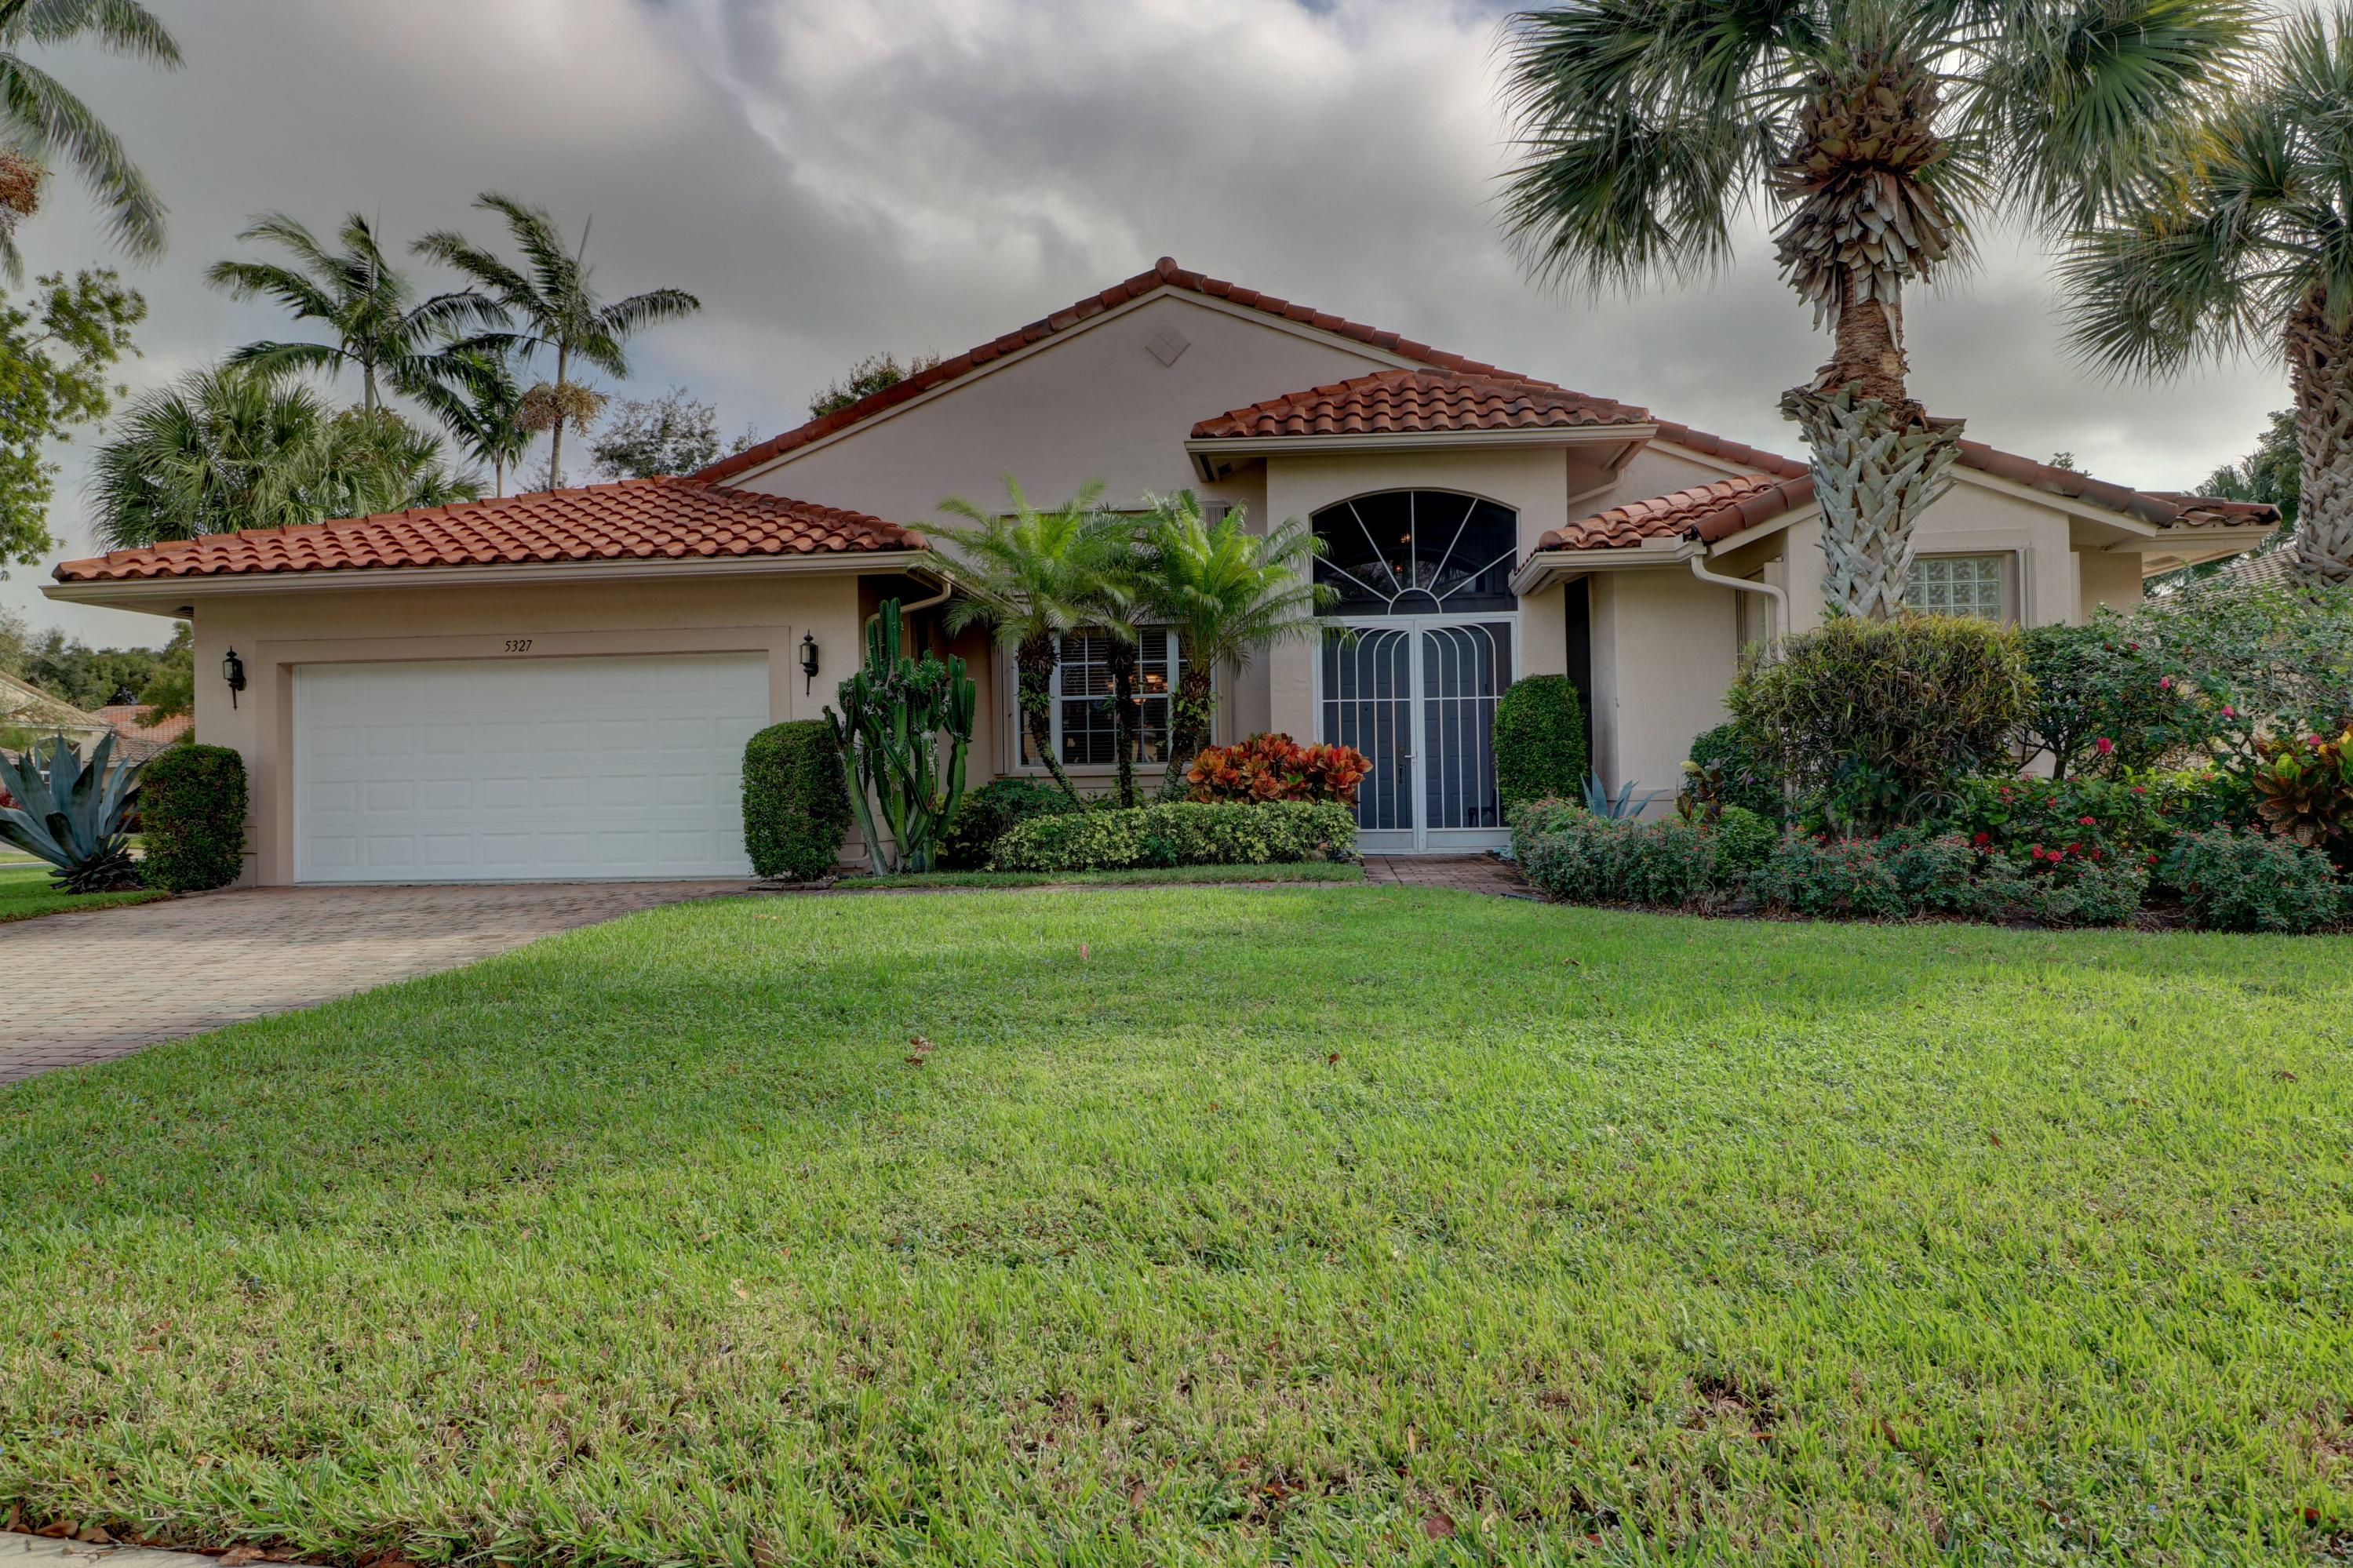 CASCADE LAKES home 5327 Landon Circle Boynton Beach FL 33437